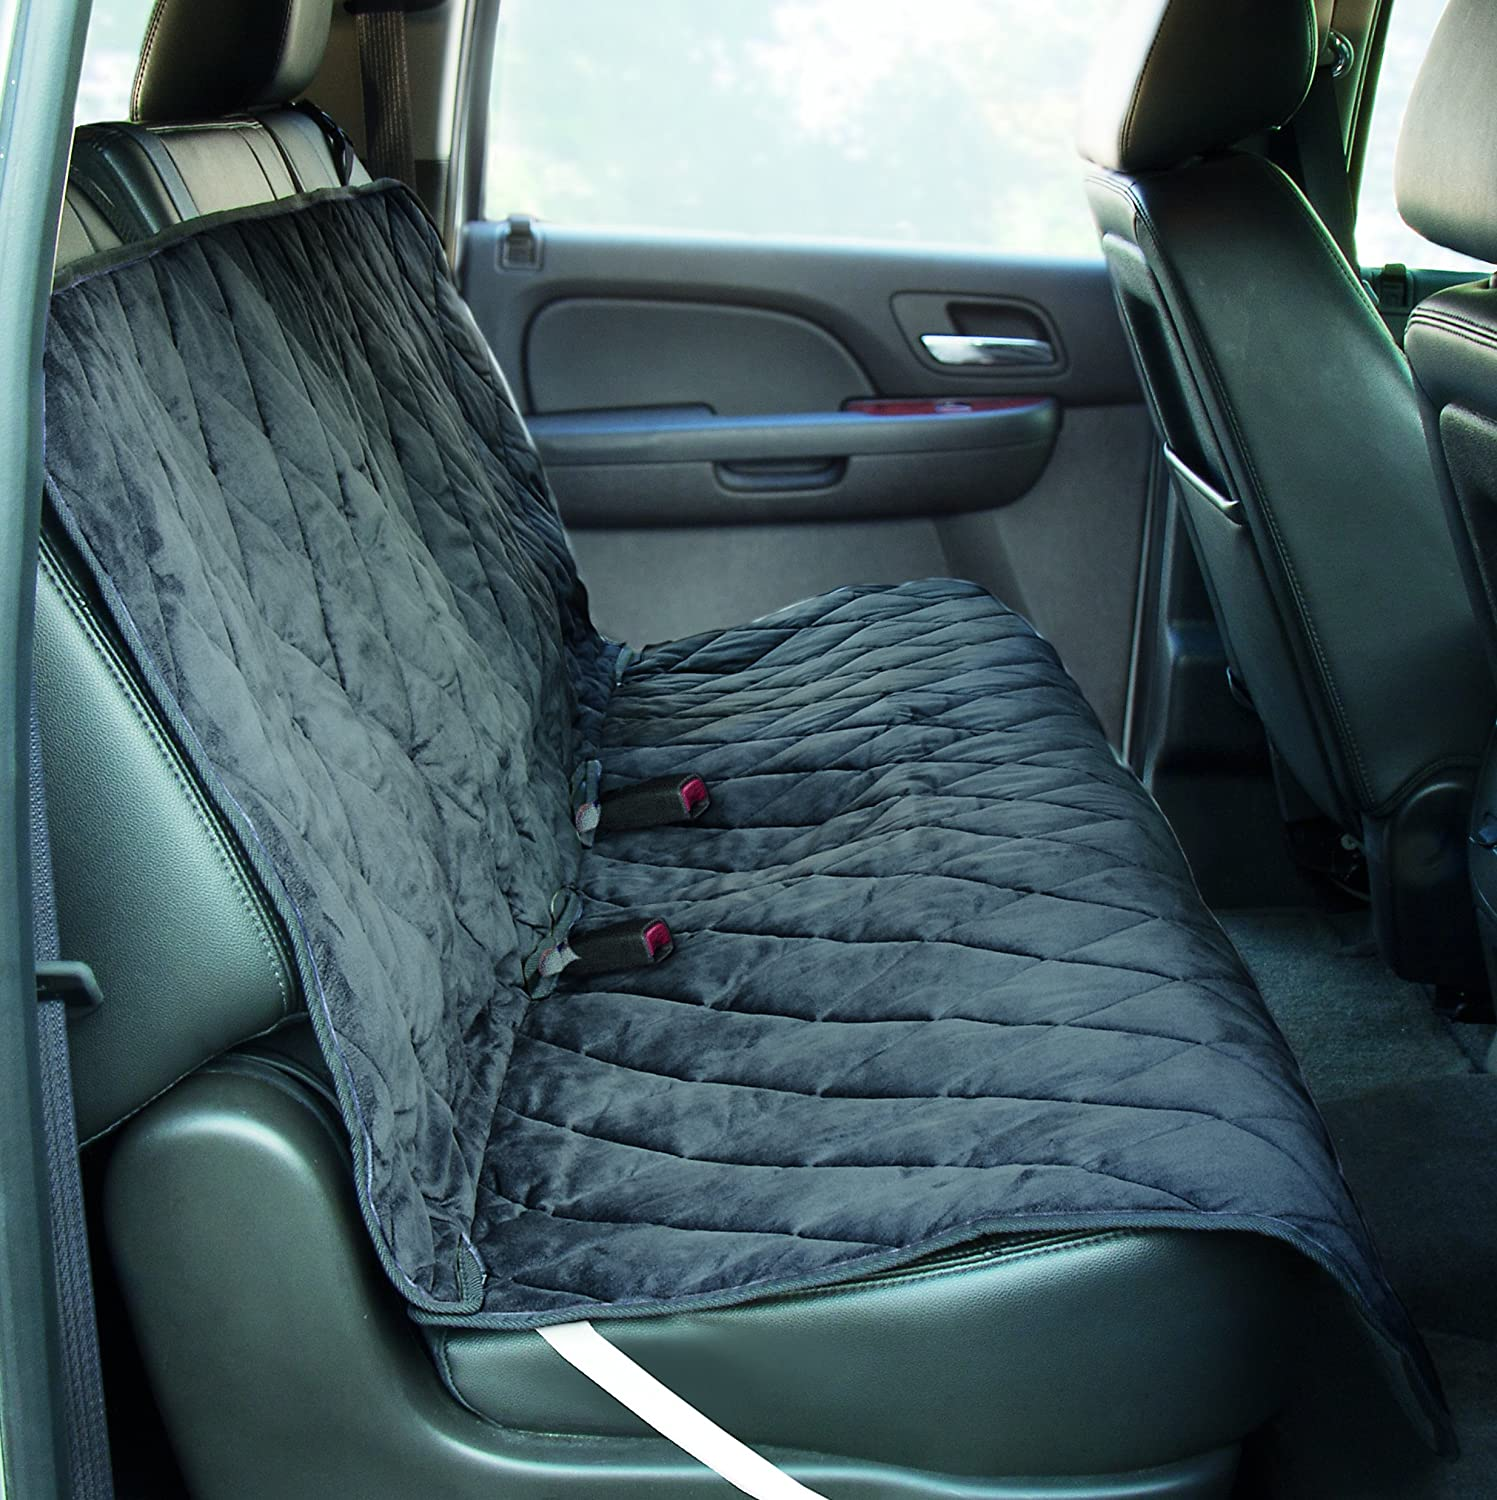 Amazon.com : Yes Pets Quilted Bench Style Water-Proof Pet Car Seat